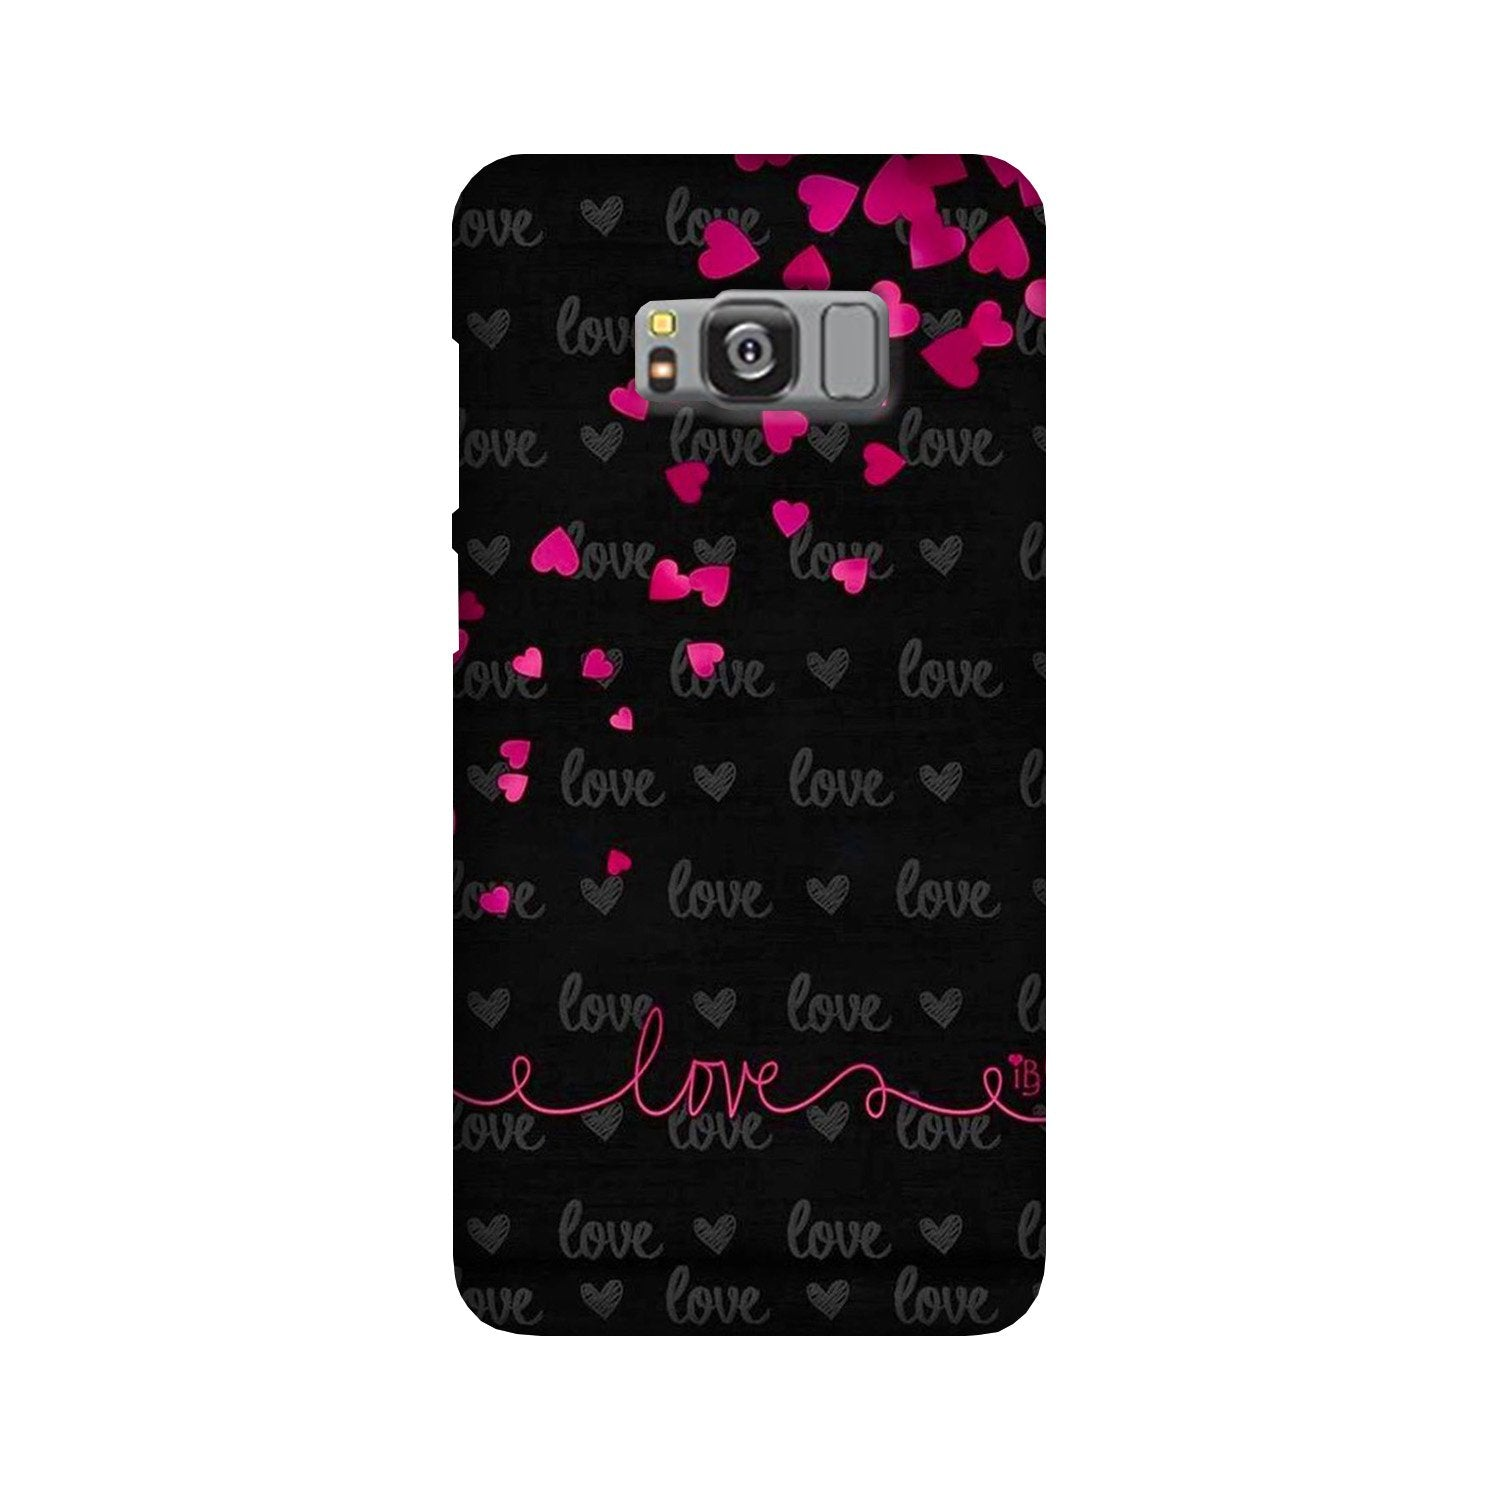 Love in Air Case for Galaxy S8 Plus